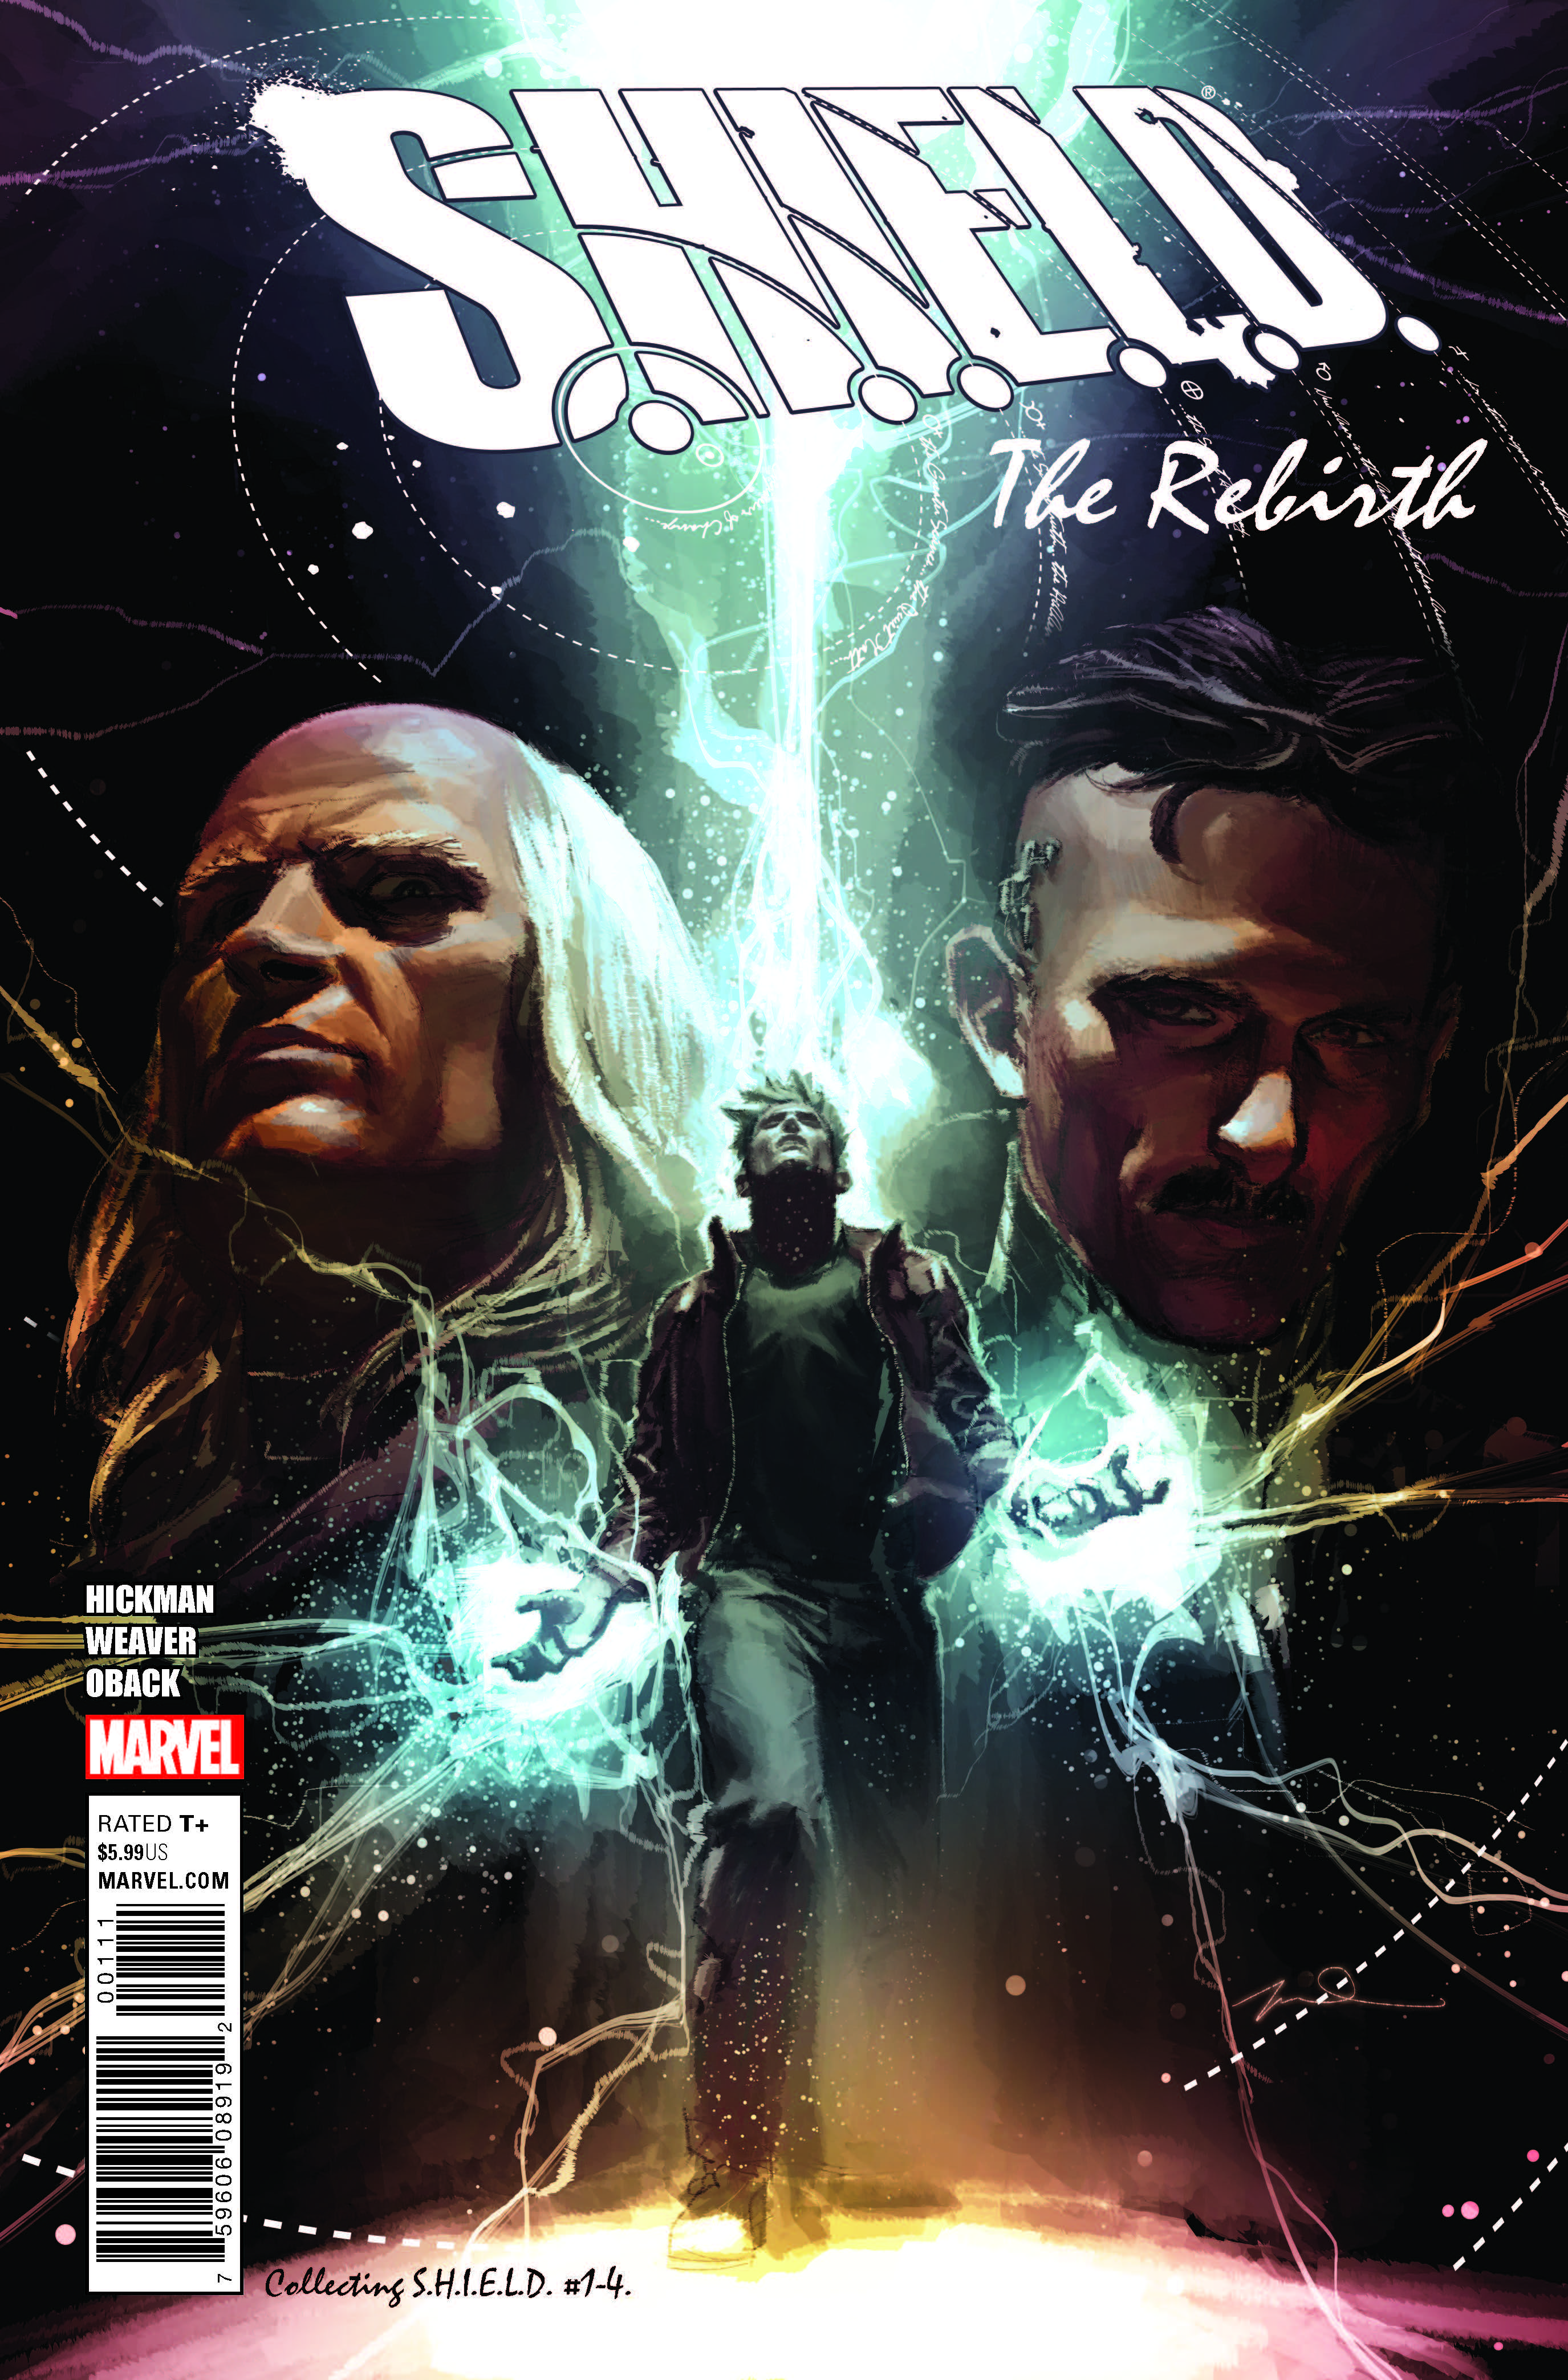 S.H.I.E.L.D. by Hickman & Weaver: The Rebirth (2018)